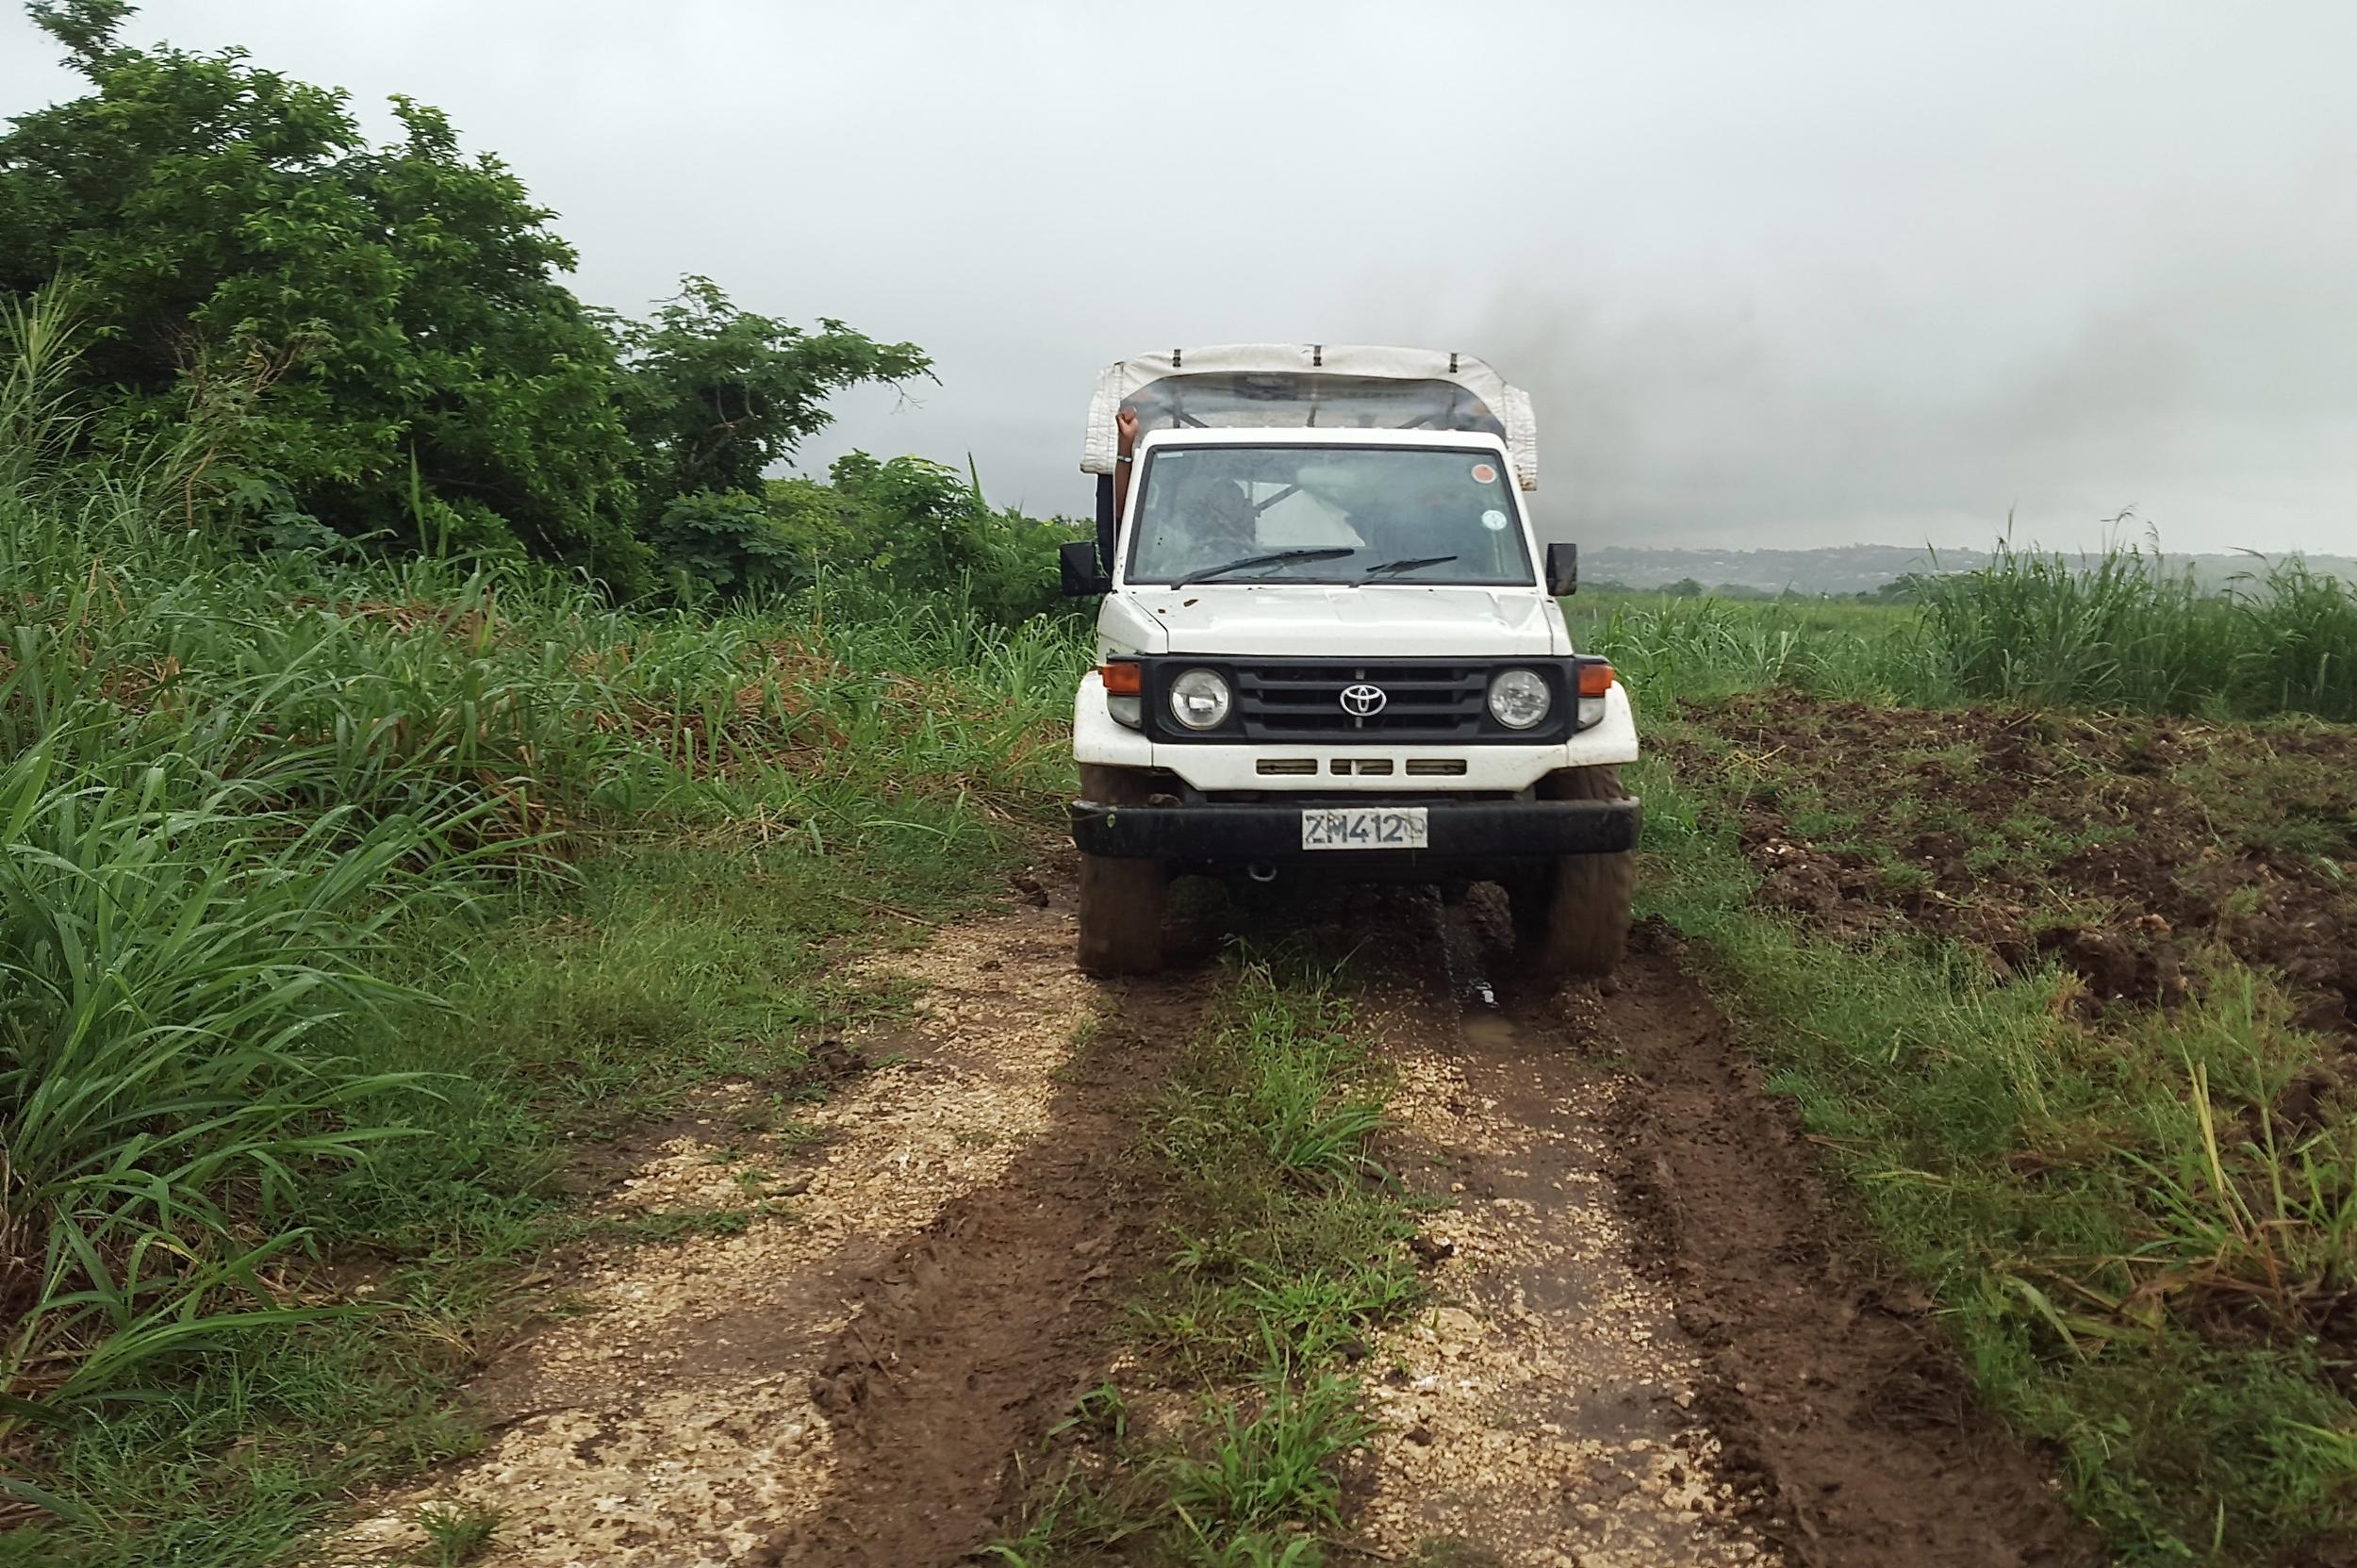 Another great excursion is off-roading with  Island Safari . It is a unique way to visit the island and take in the terrain. You will also learn about the history of Barbados and visit several different landmarks.